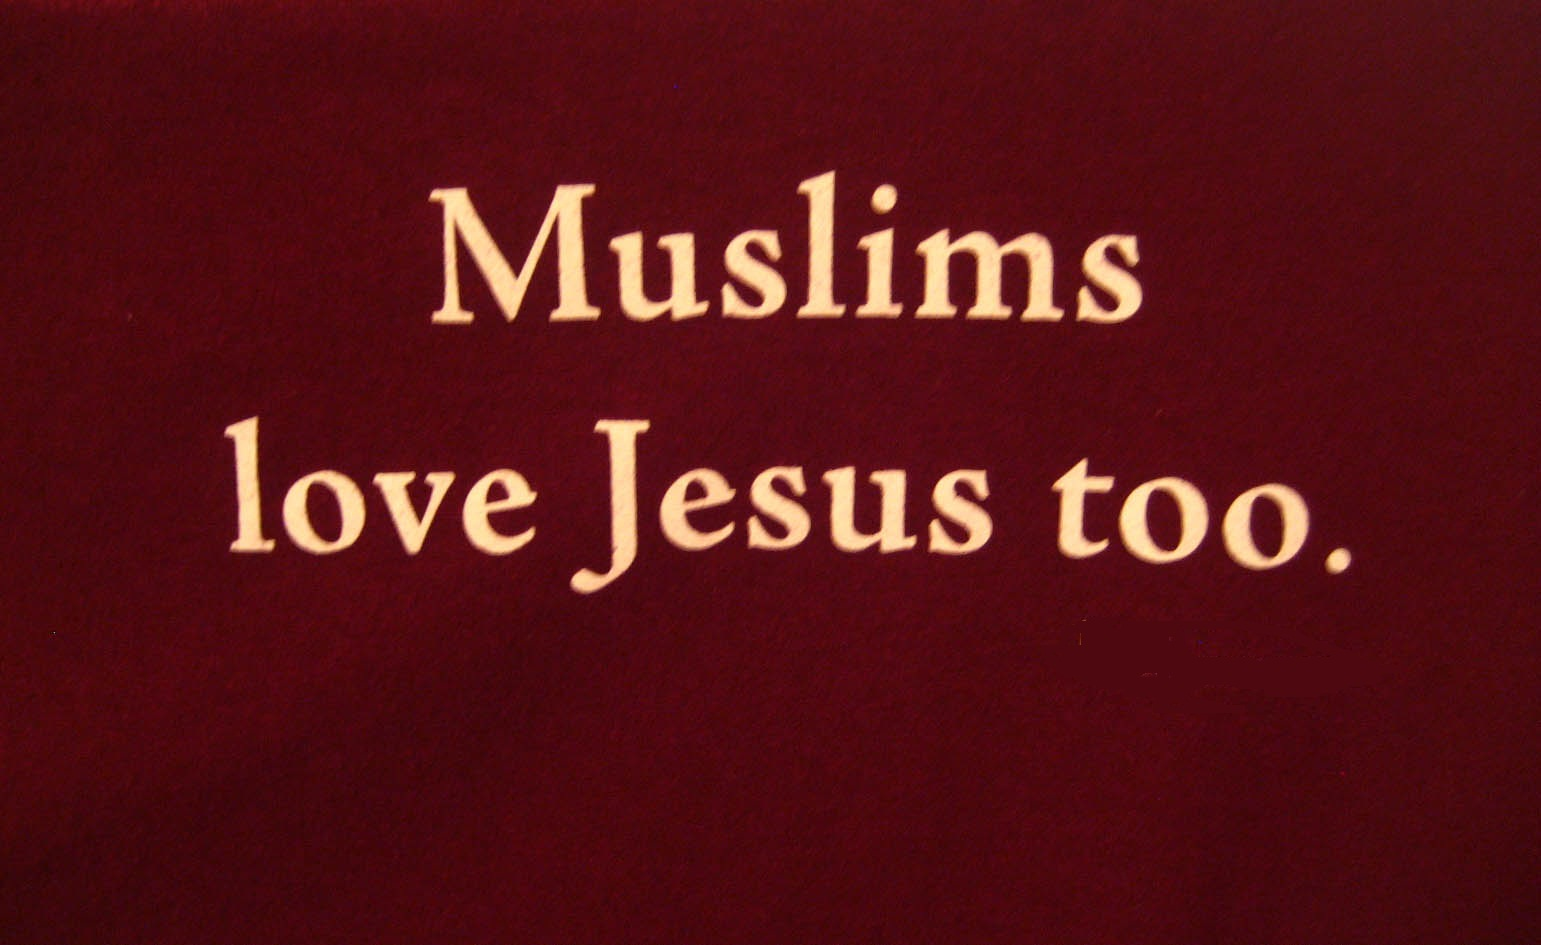 What Are the Rights of Jesus upon Muslims